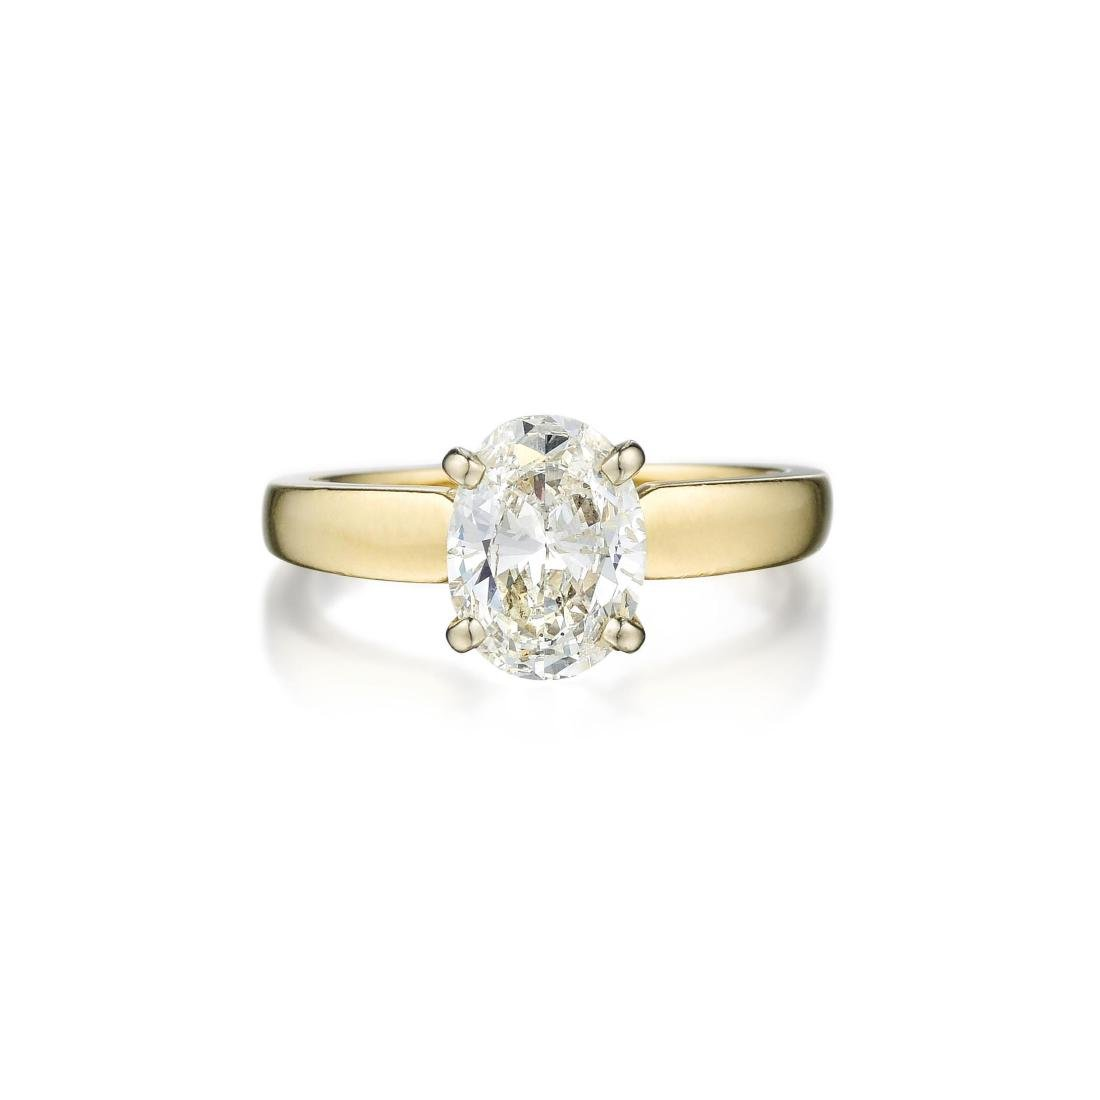 A 14K Gold Diamond Ring